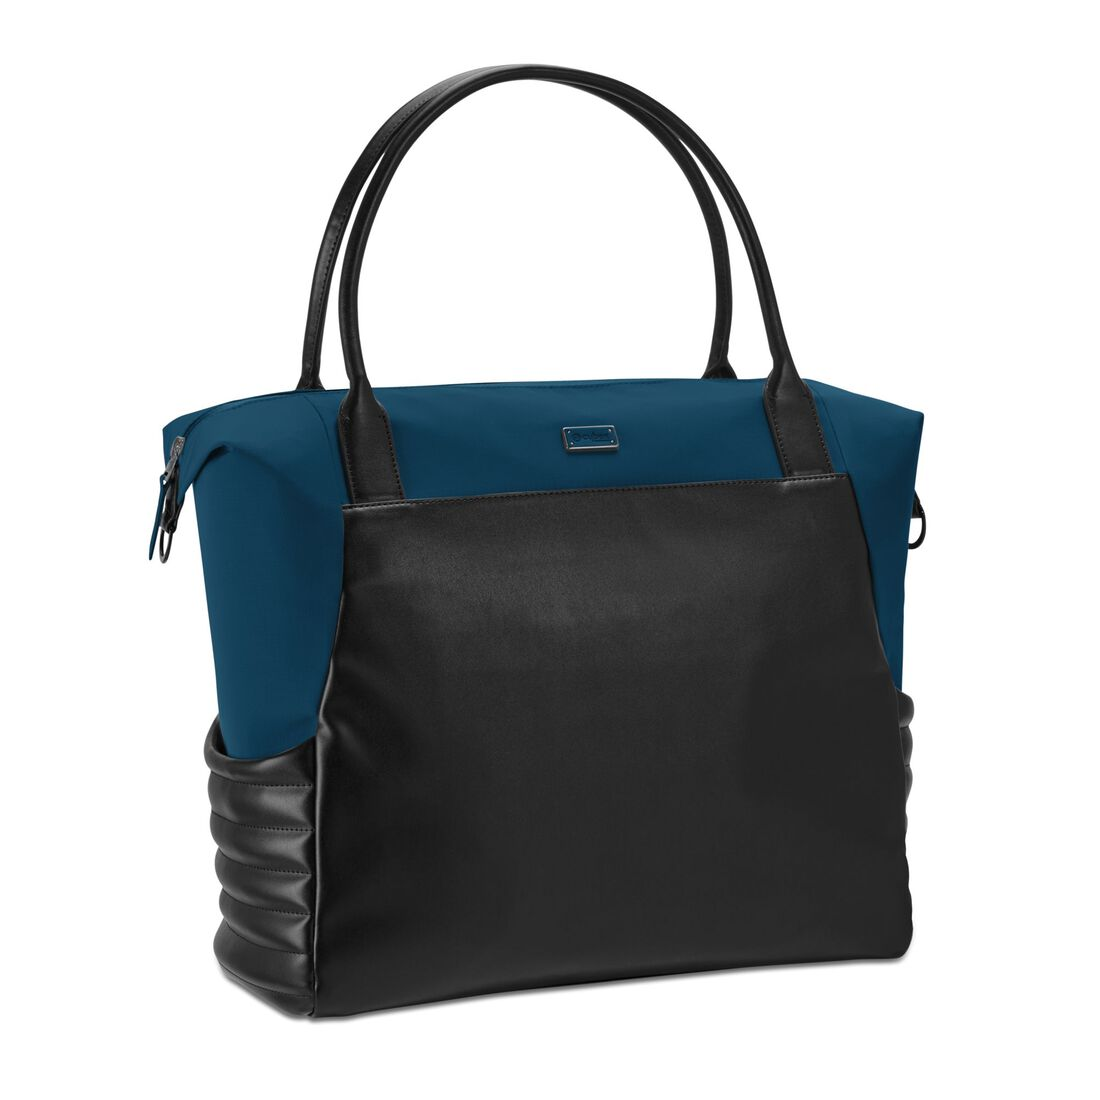 CYBEX Priam Changing Bag - Mountain Blue in Mountain Blue large image number 1